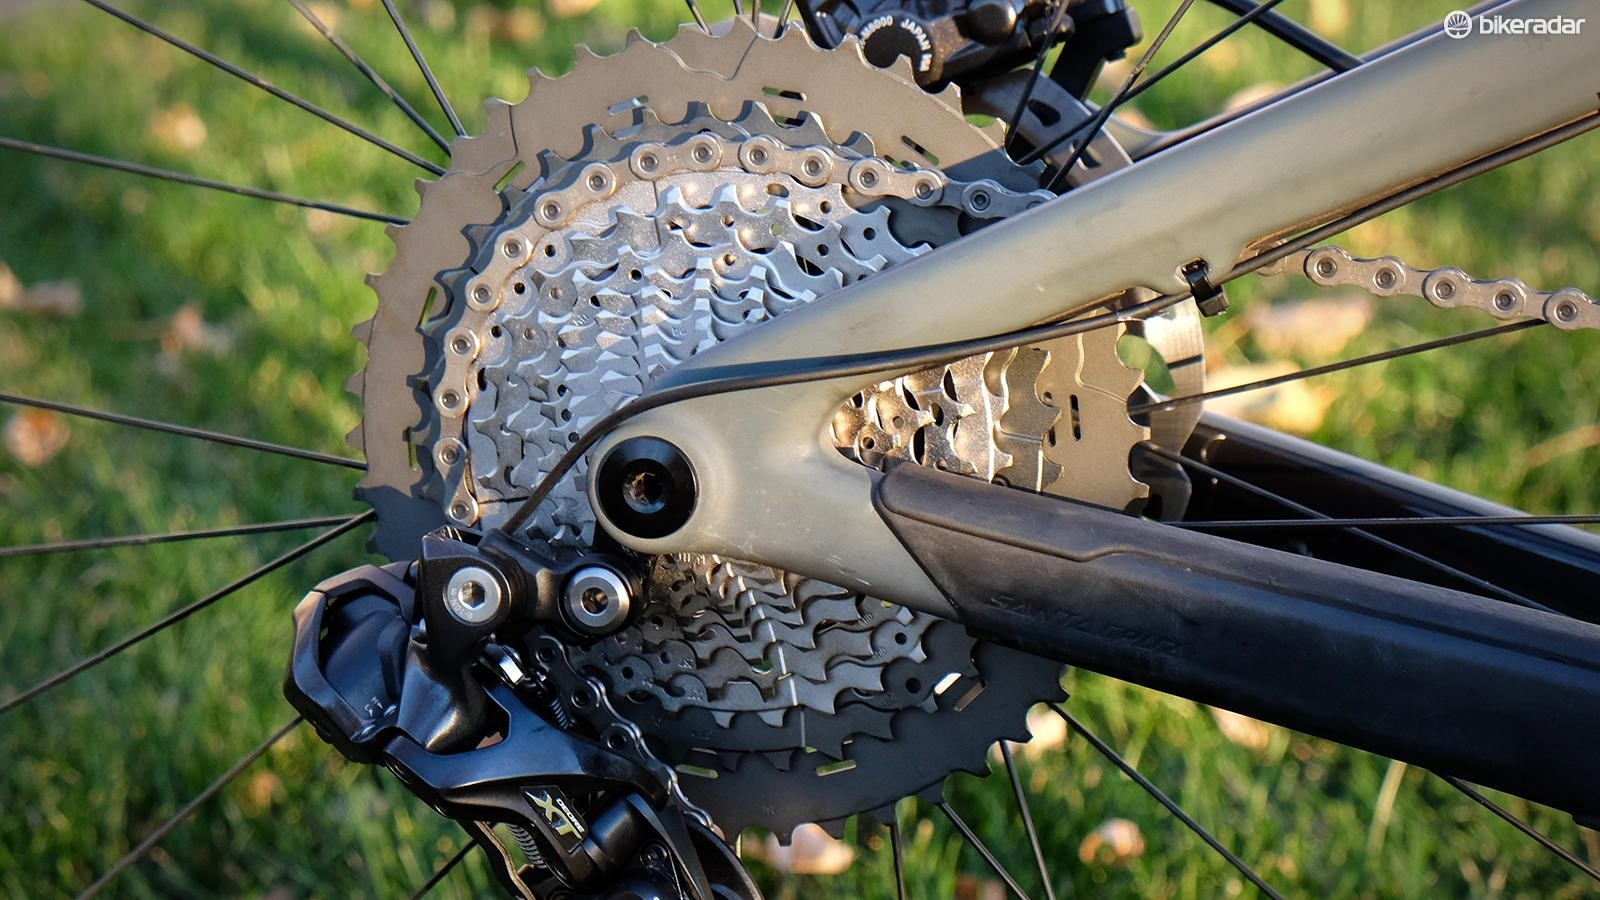 The 11-46t cassette has plenty of range, but the jump from 37-46t is quite large